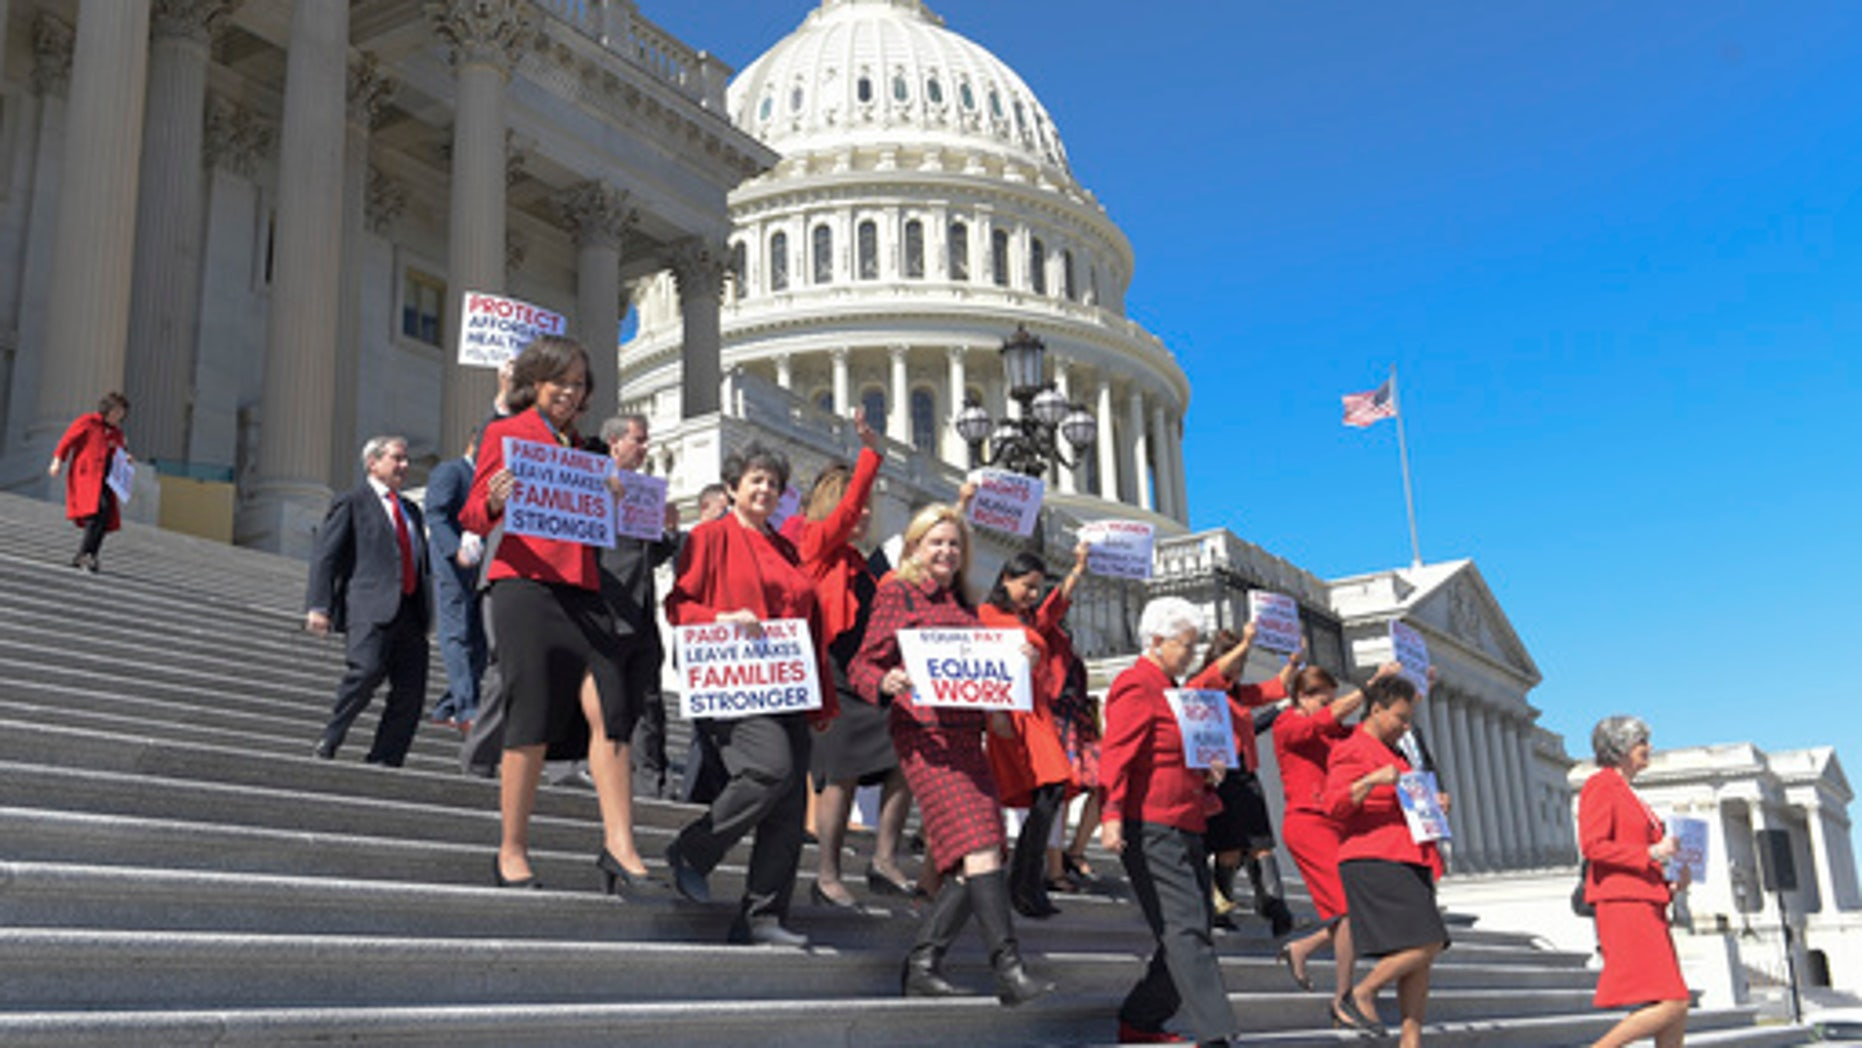 Democratic House members walk down the steps of Capitol Hill in Washington, Wednesday, March 8, 2017, for an event to honor International Women's Day. (AP Photo/Susan Walsh)